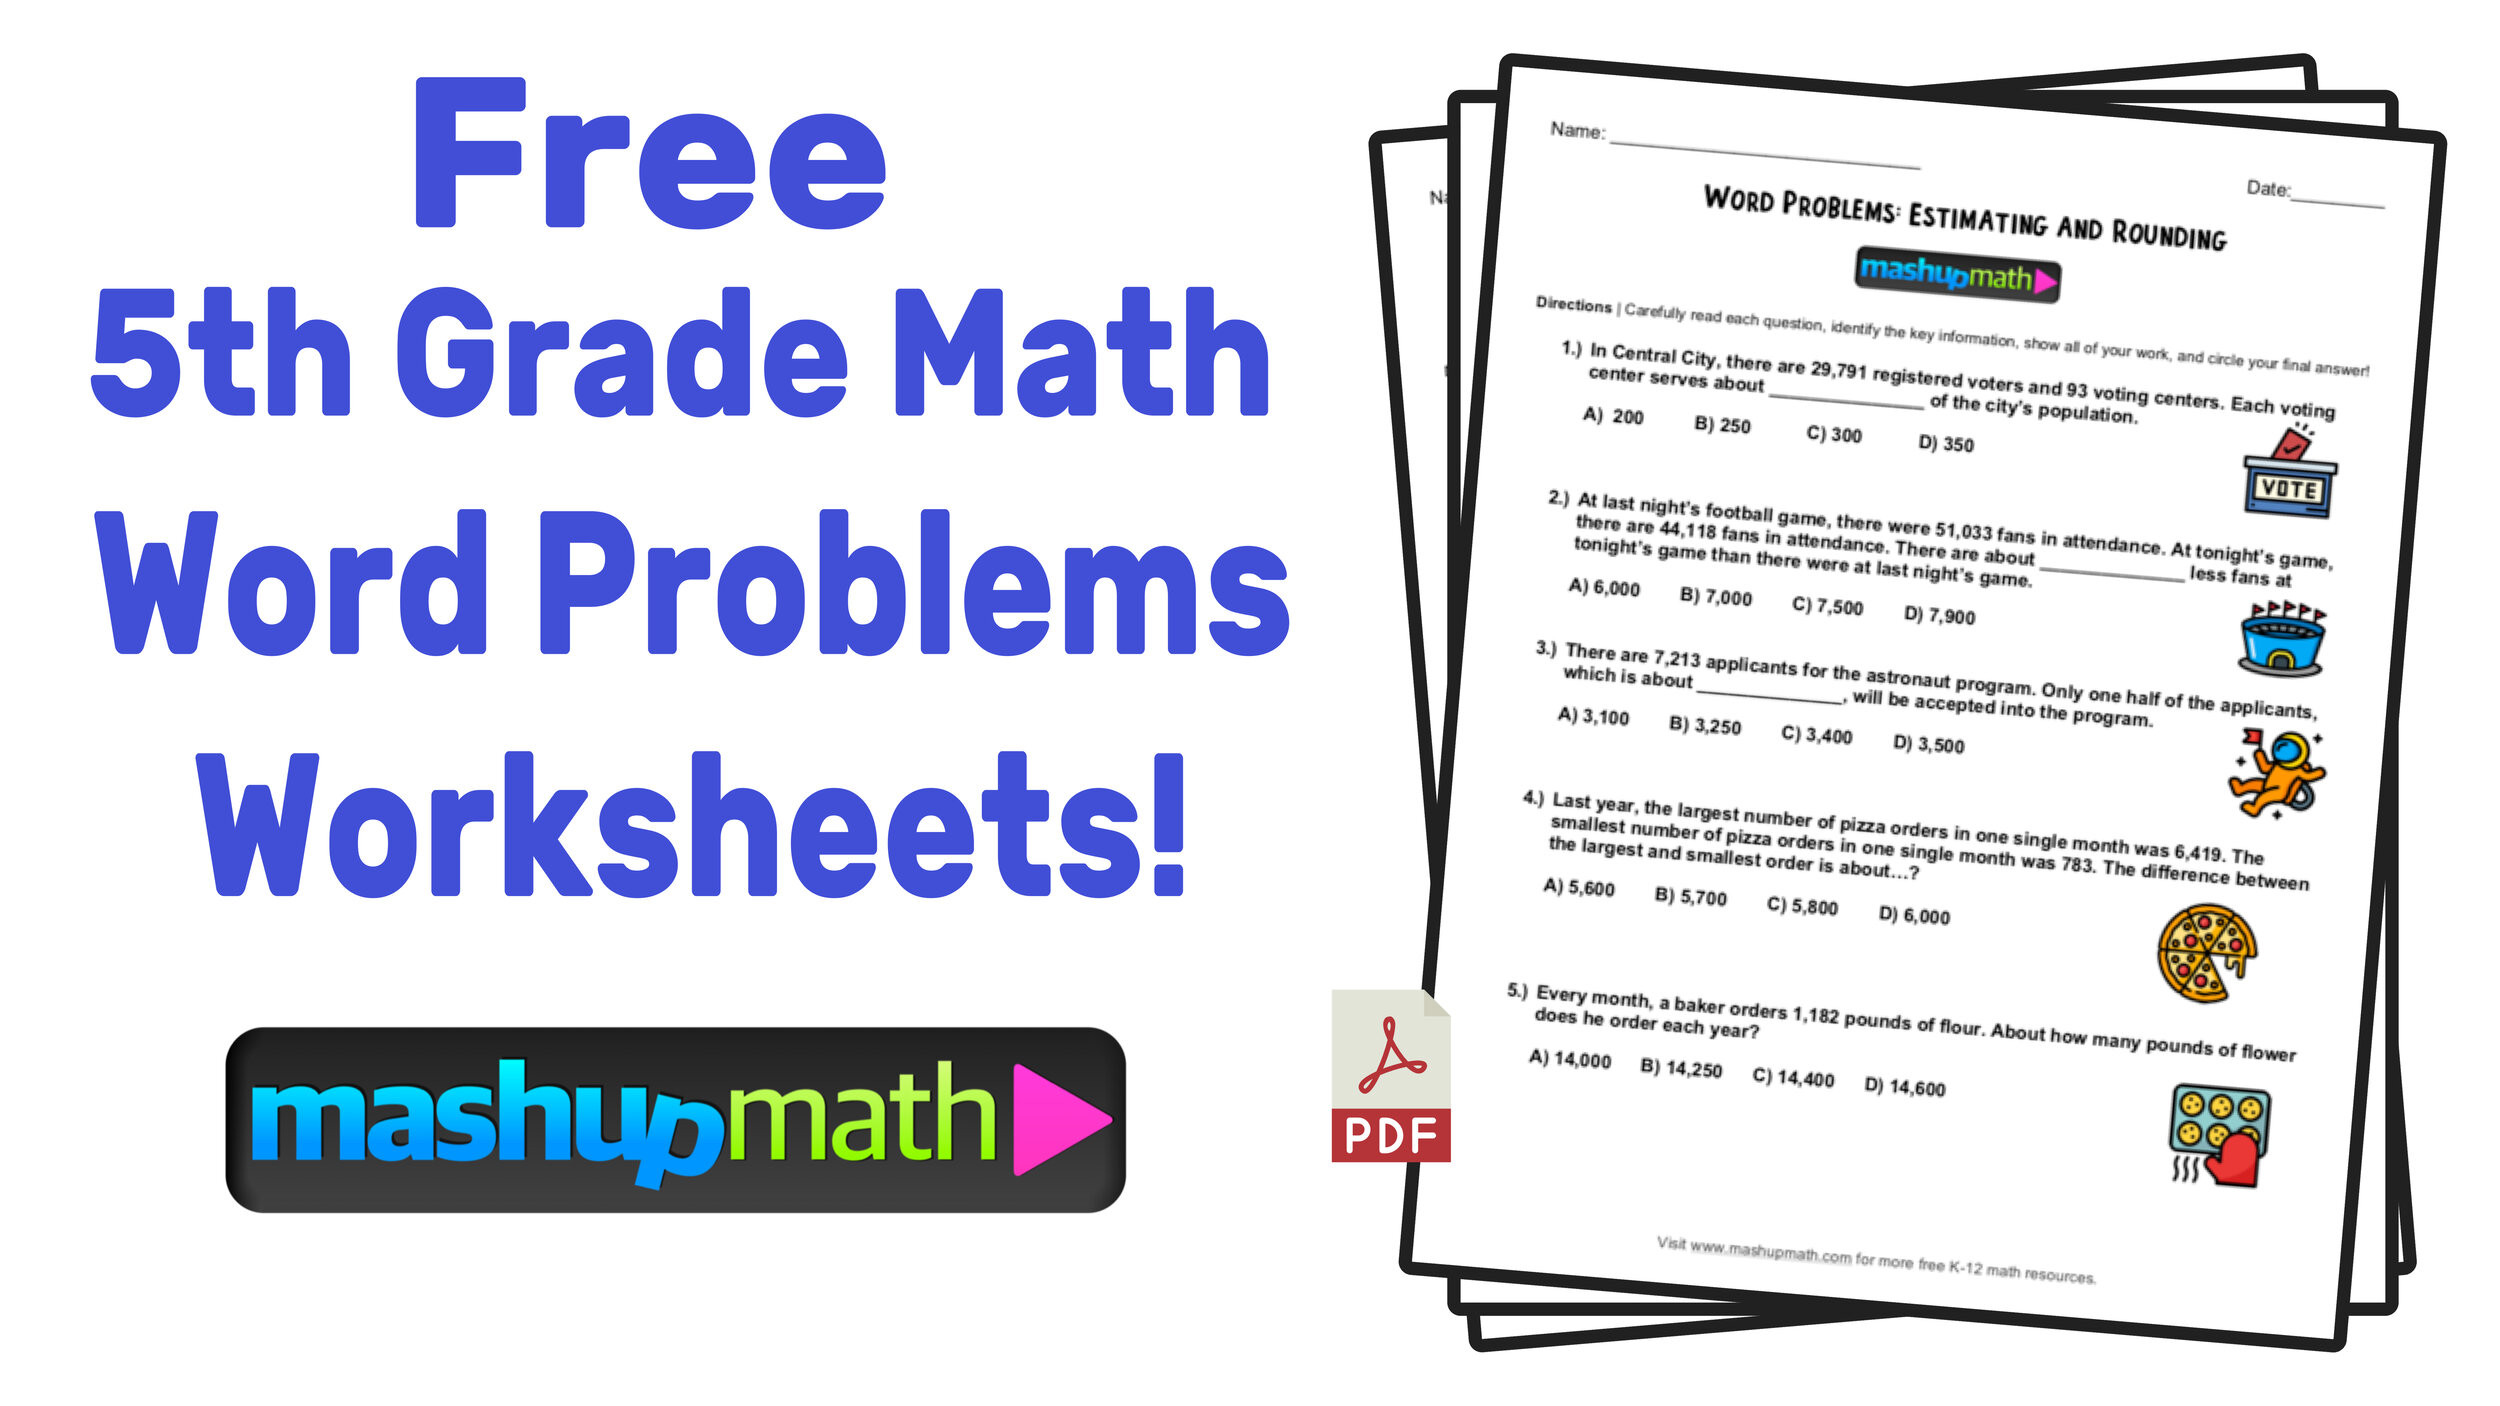 Third Grade Fraction Word Problems 5th Grade Math Word Problems Free Worksheets with Answers